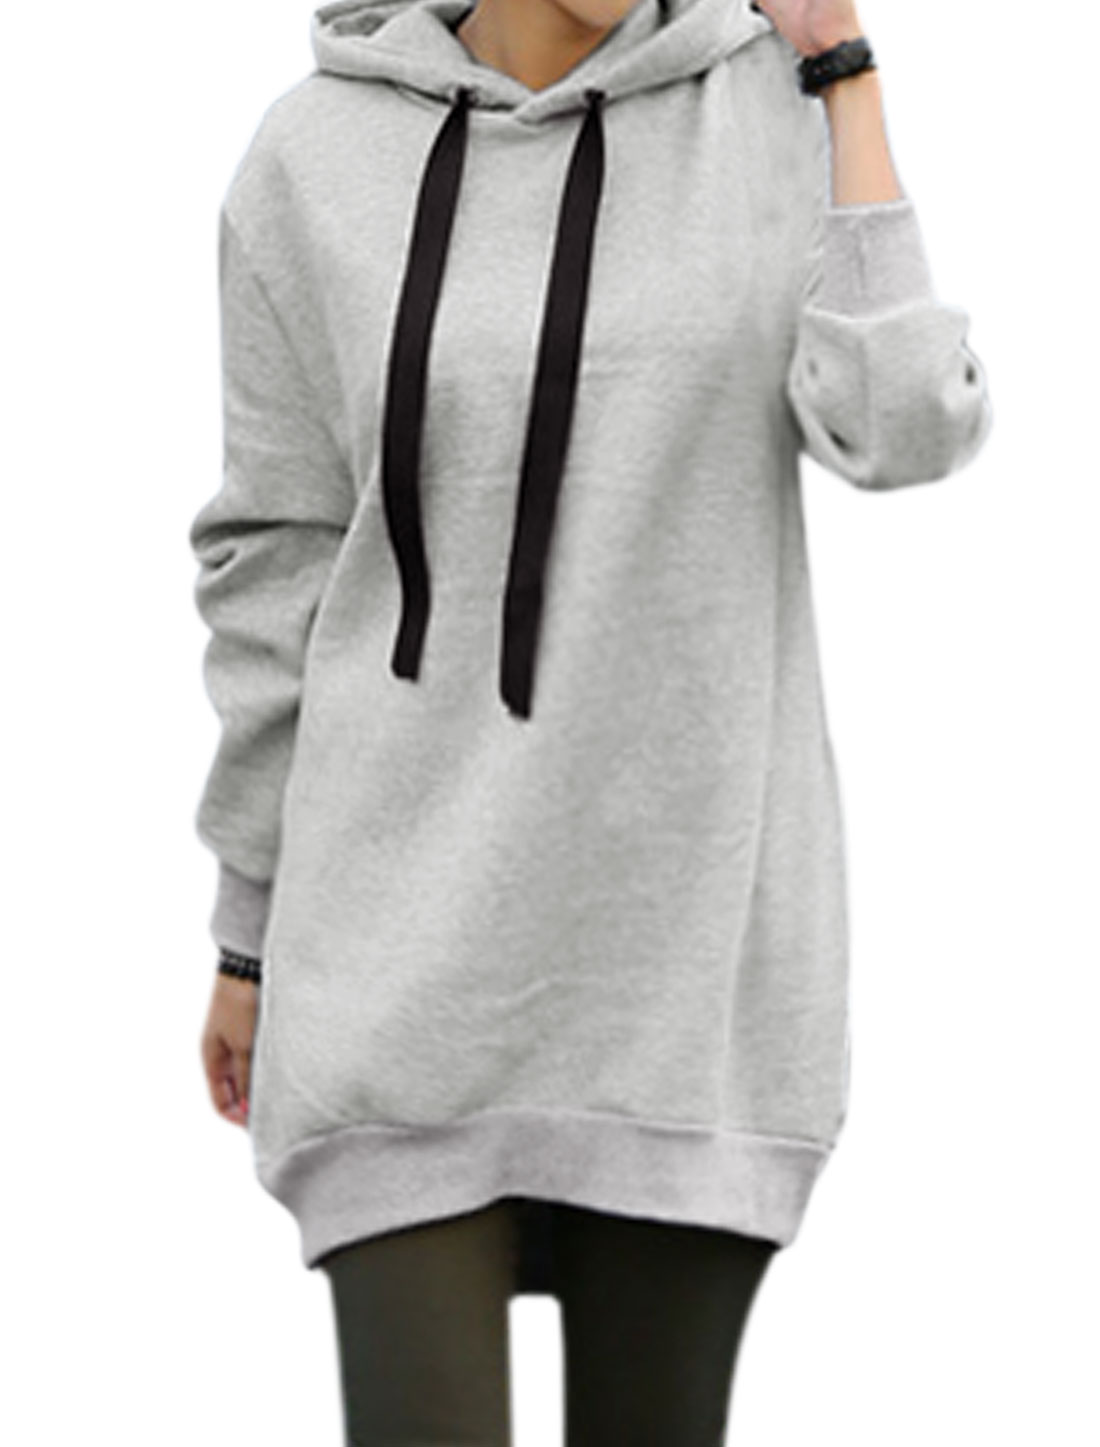 Women Drawstring Hood Batwing Sleeves Loose Soft Lining Tunic Sweatshirt Gray S